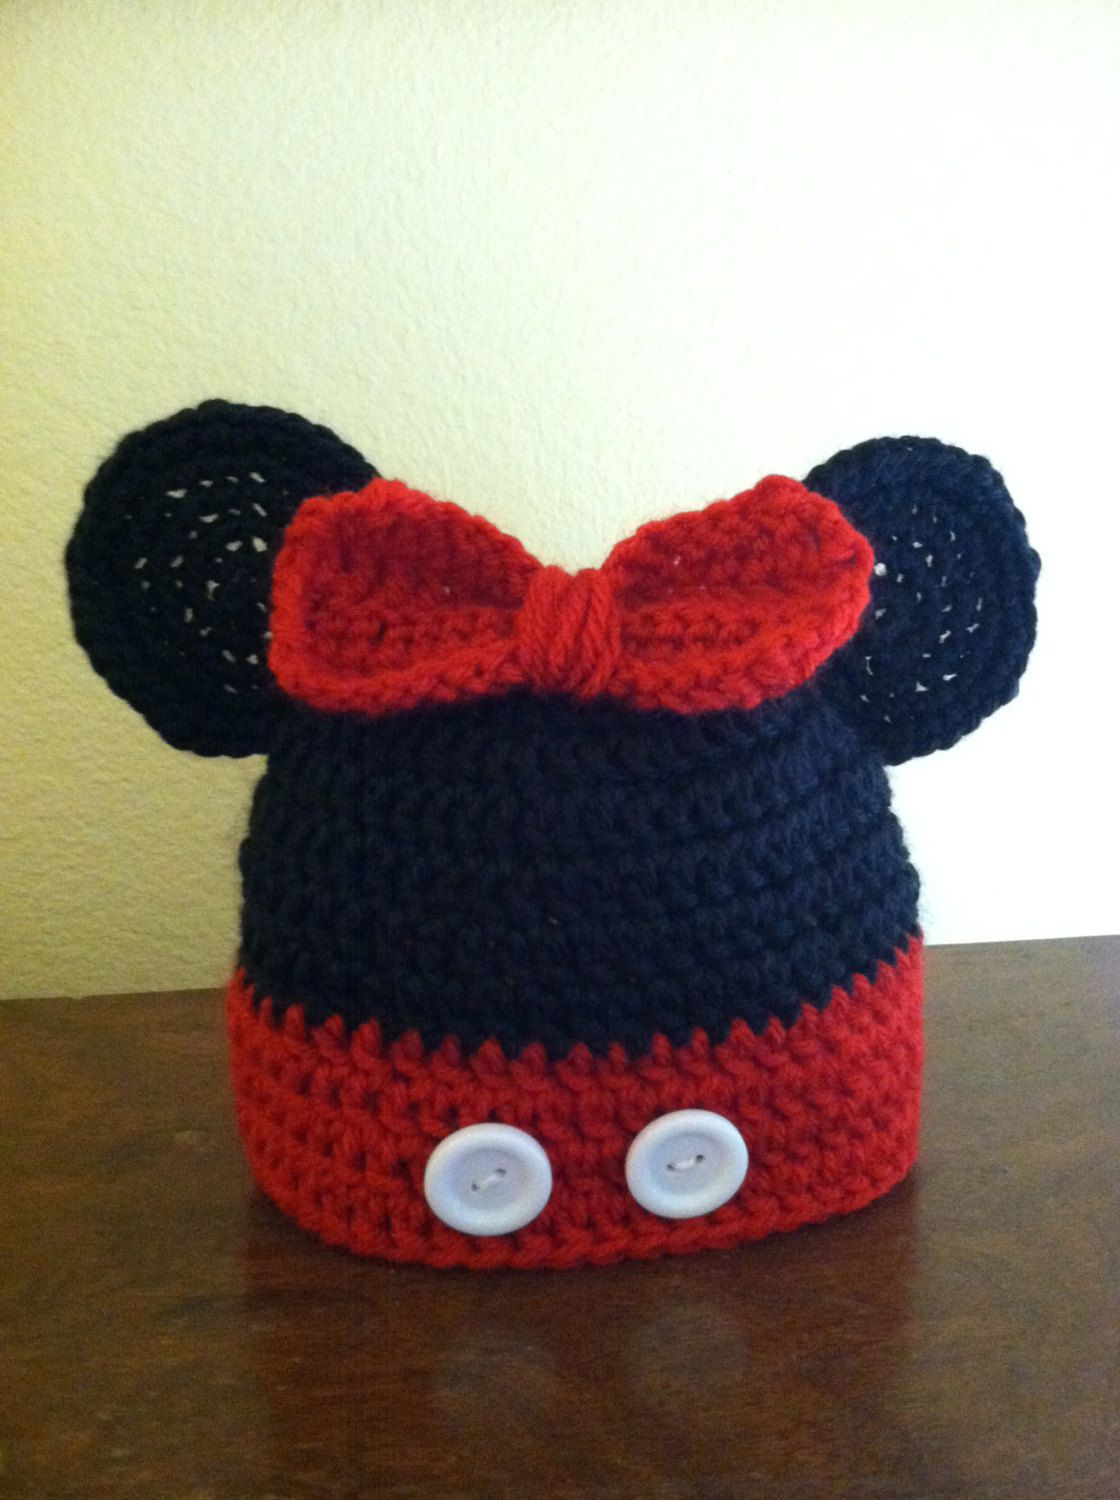 Crochet pattern mickey or minnie mouse hat by acorntreecreations free crochet pattern mickey or minnie mouse hat link to free pattern in listing sizes preemieamerican girl doll through adult extra large bankloansurffo Choice Image